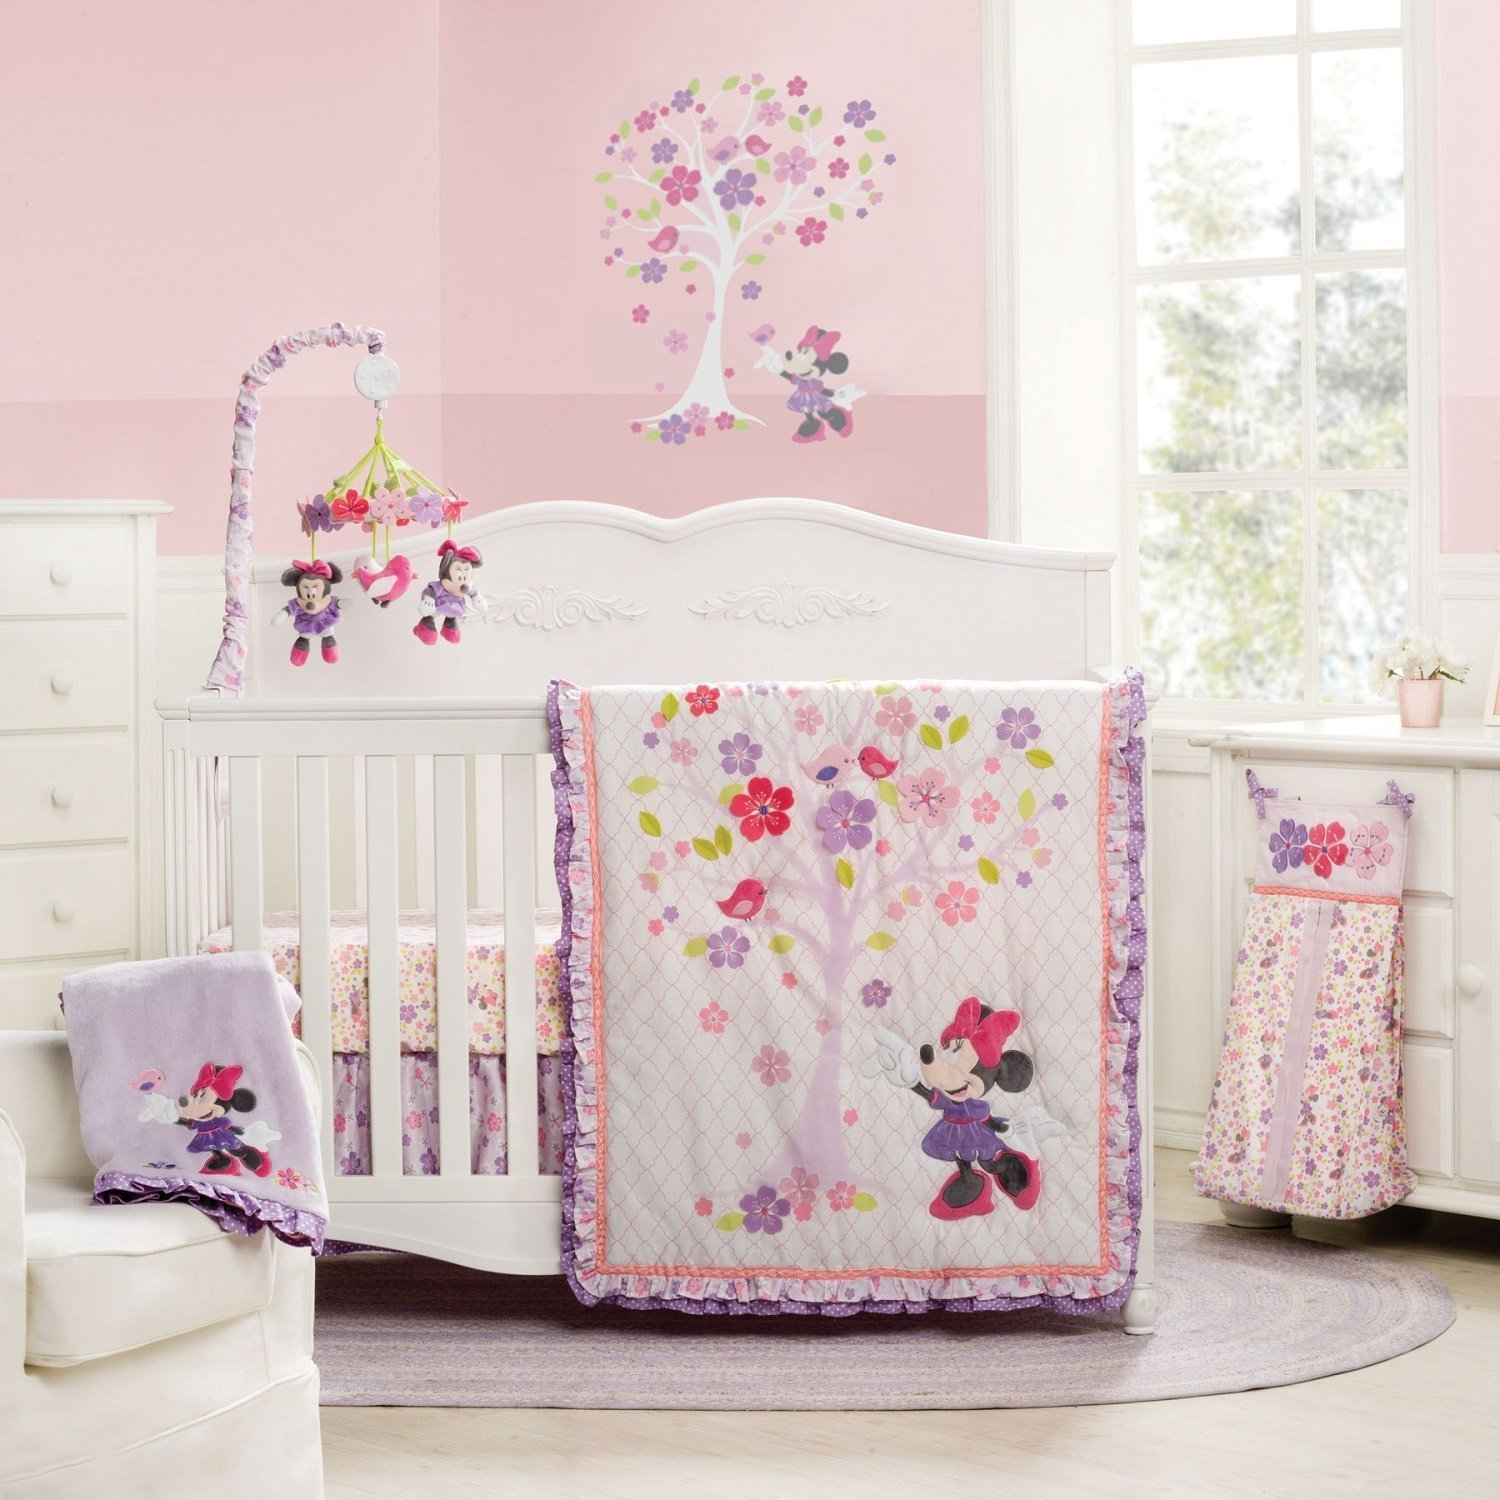 nickbarron] 100 Minnie Mouse Bedroom Furniture